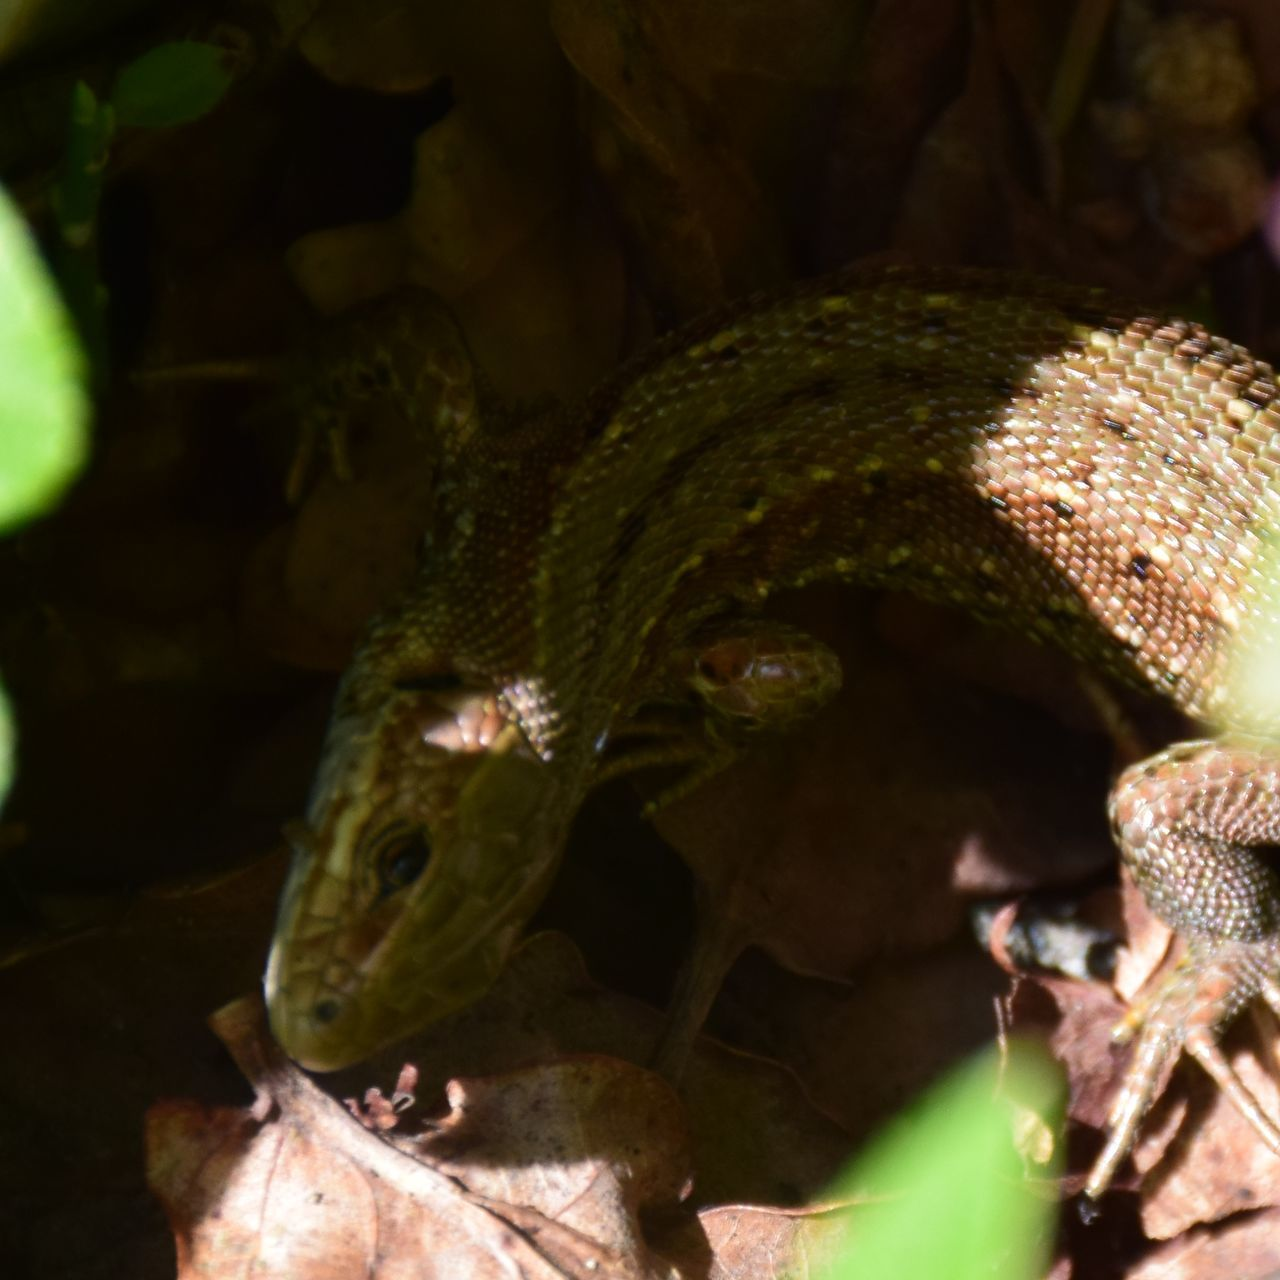 animal themes, animals in the wild, one animal, close-up, no people, nature, night, outdoors, reptile, beauty in nature, mammal